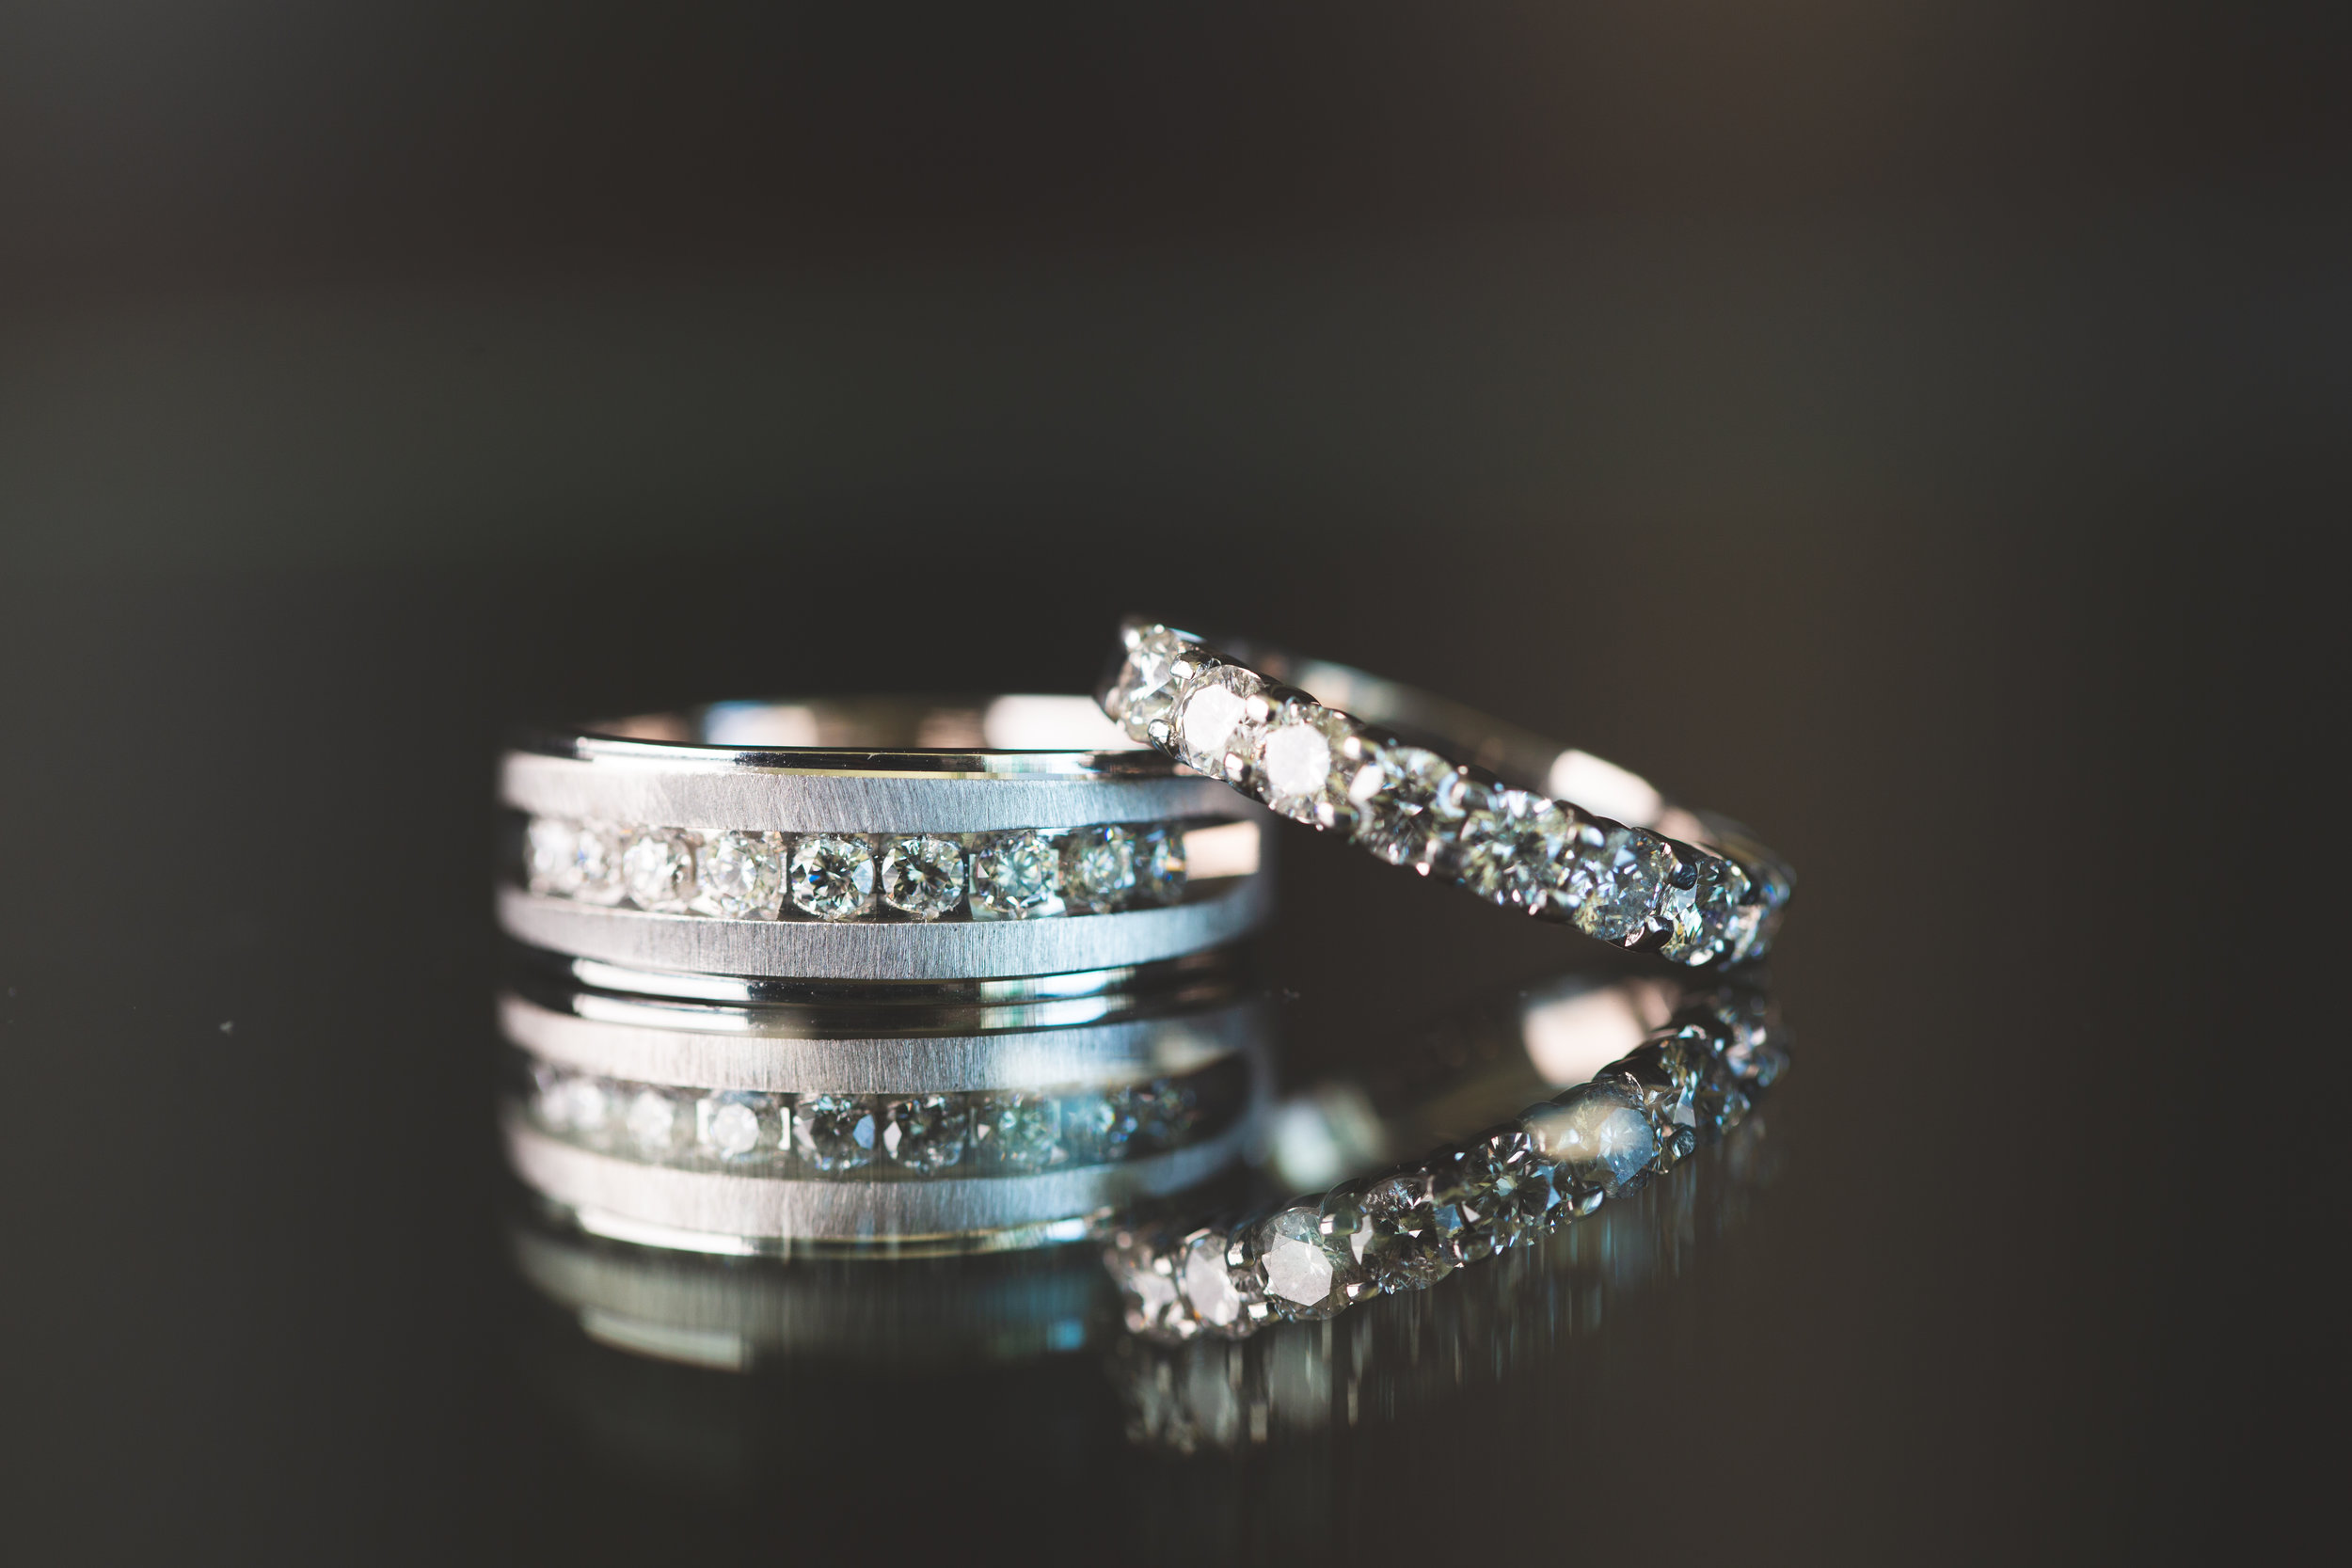 Cancun Destination Wedding, HardRock Hotel, Wedding Rings.jpg